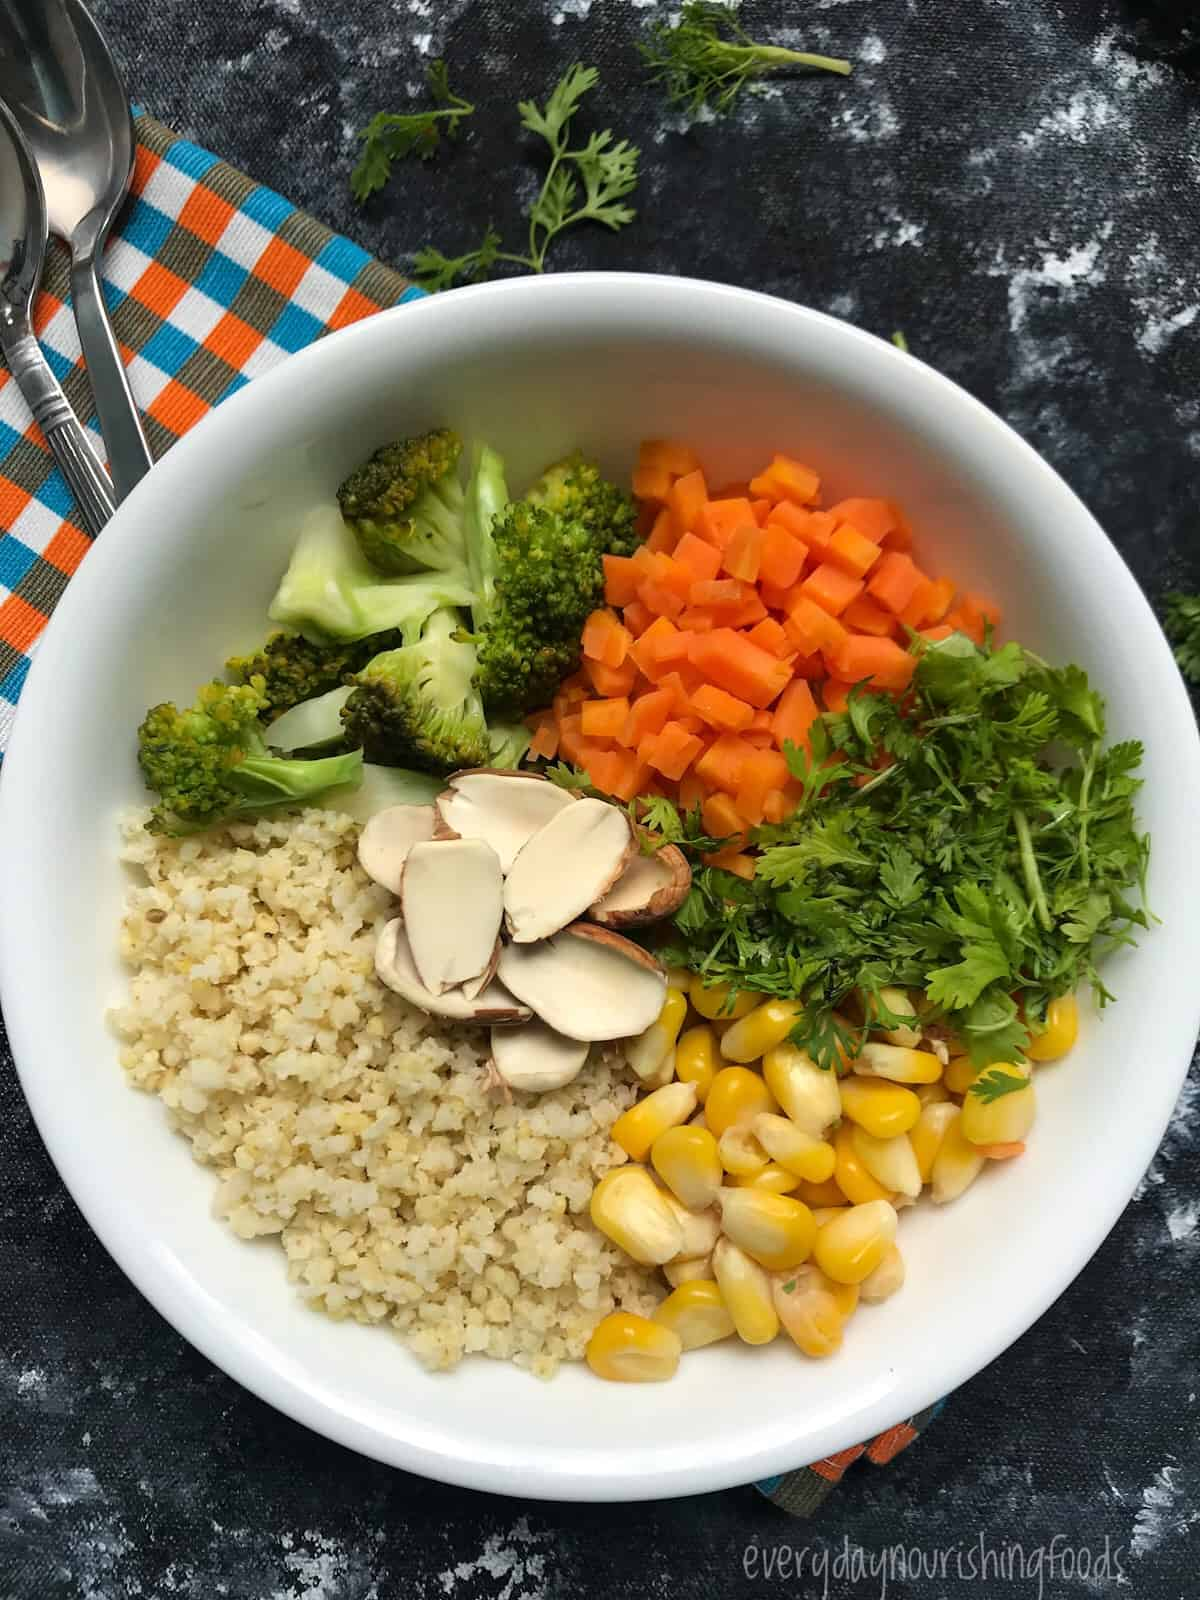 millet salad ingredients in a bowl